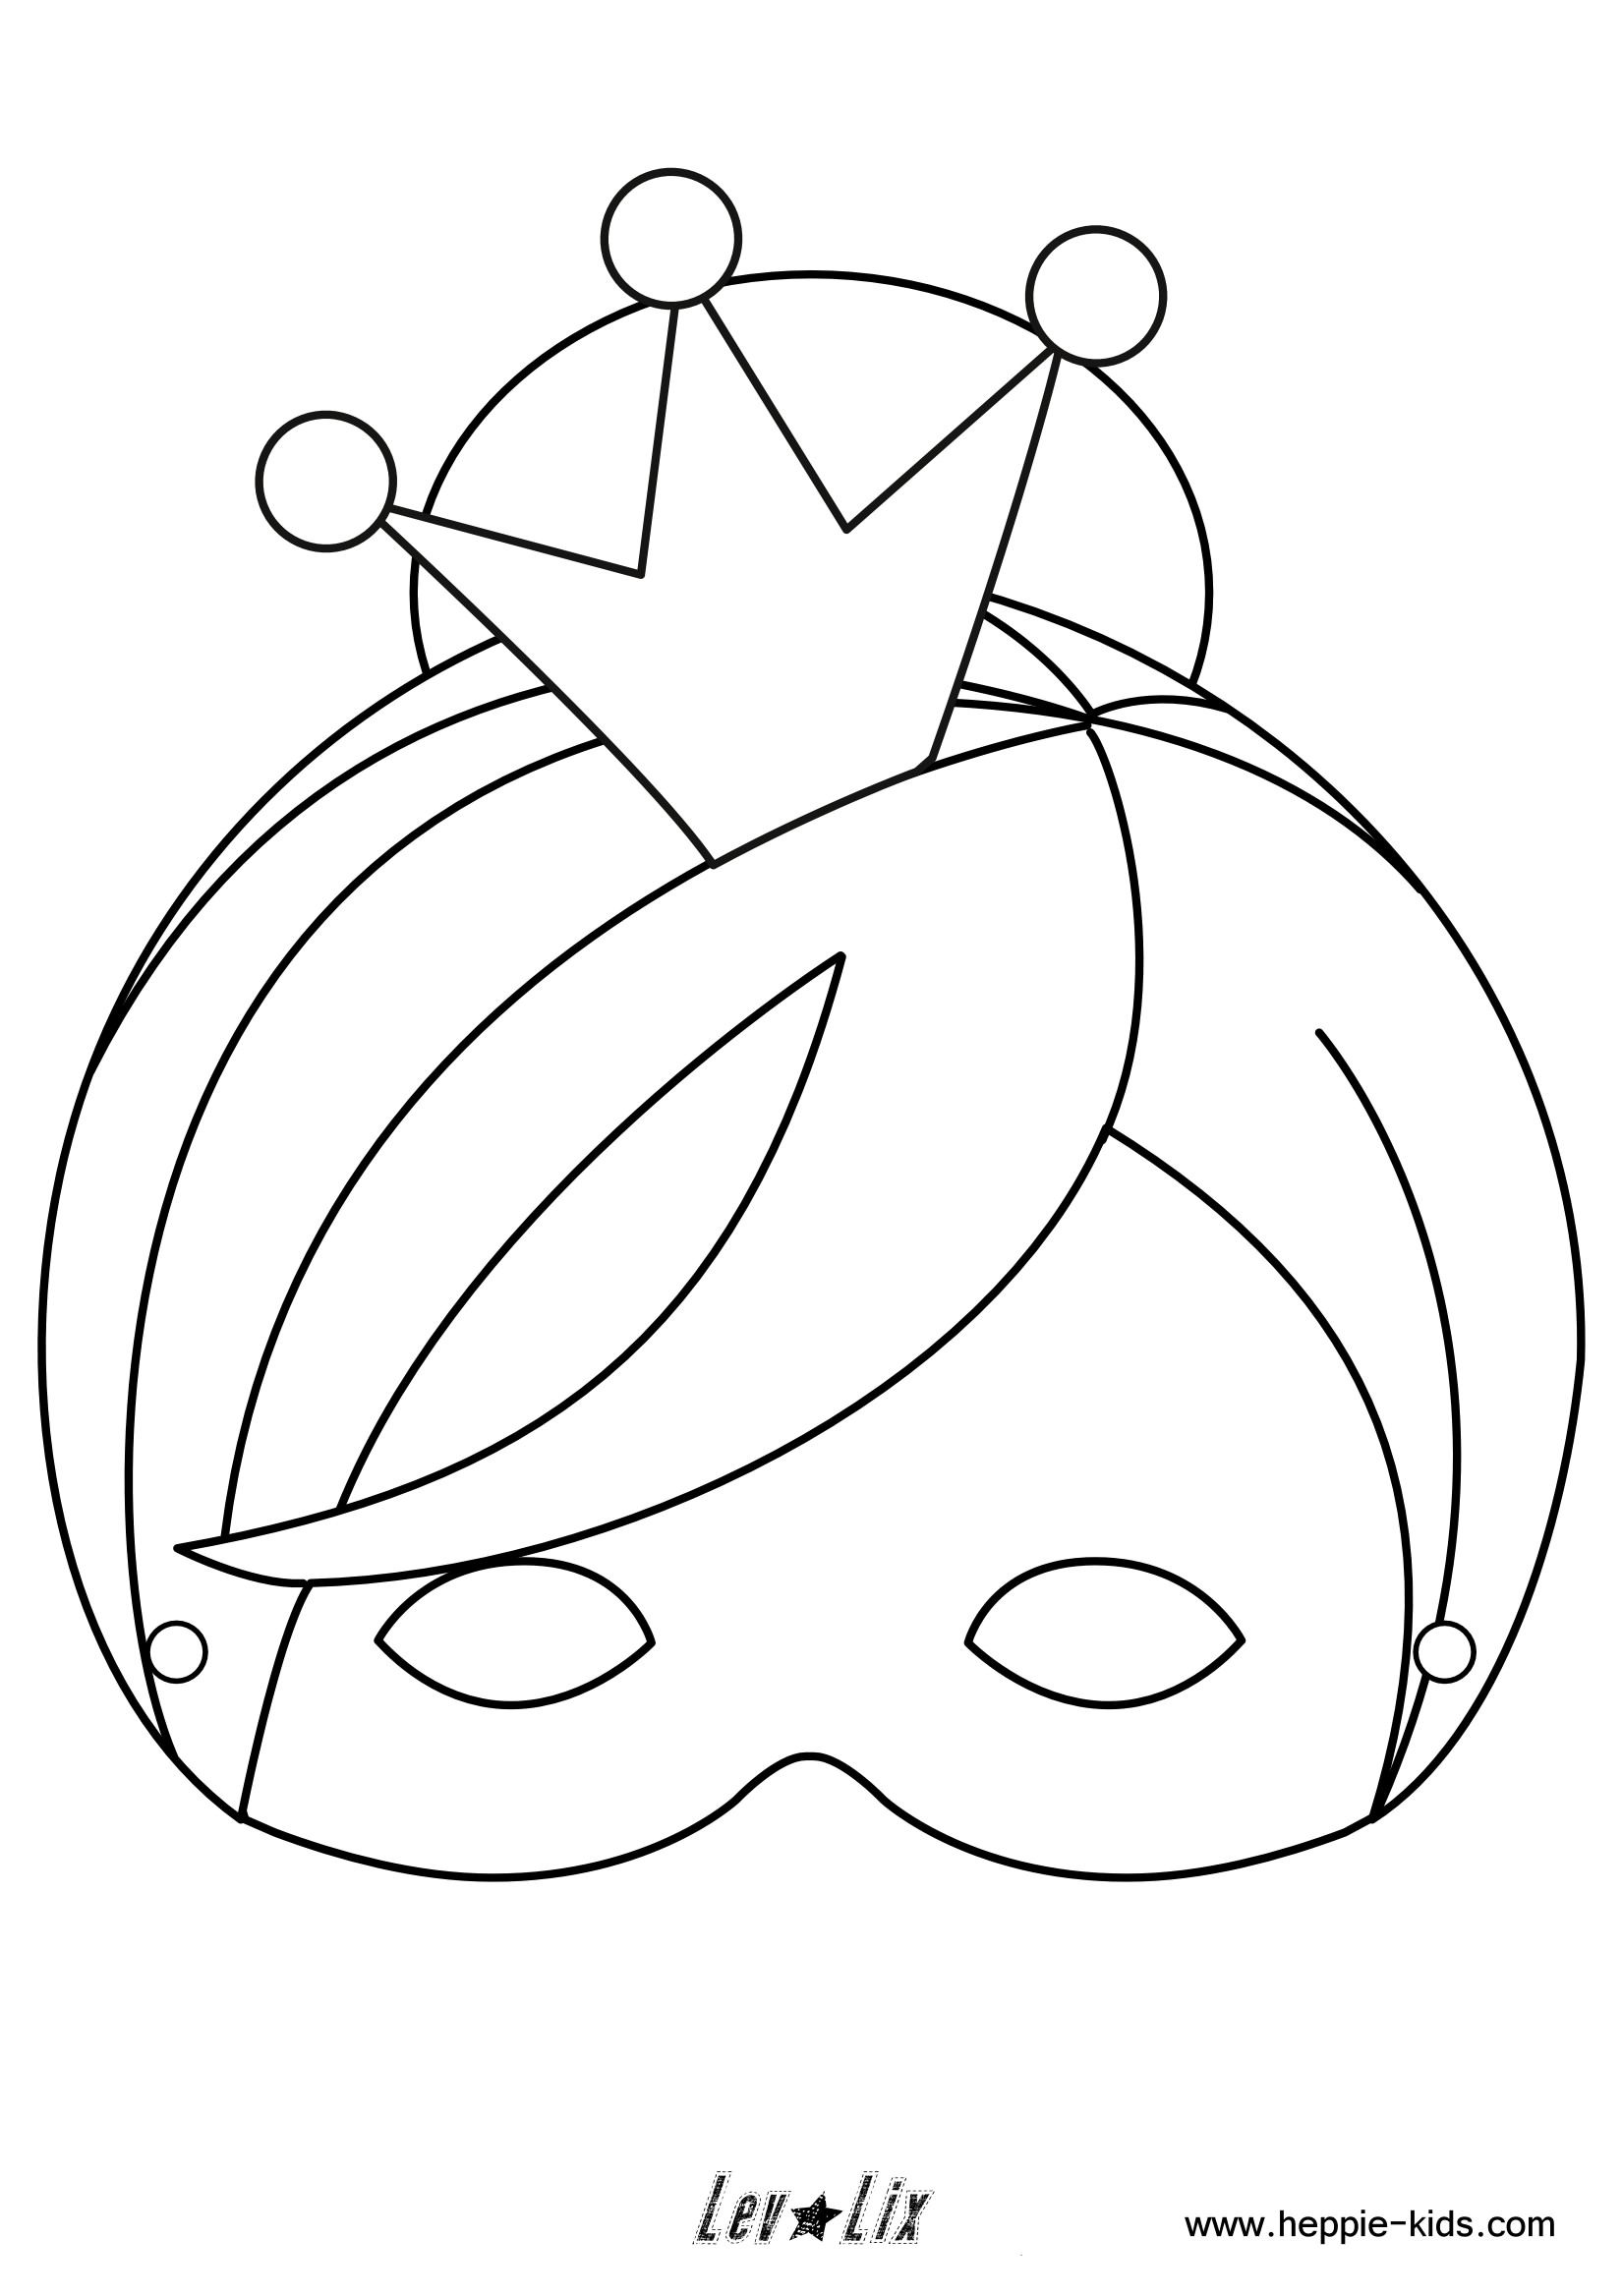 Prinsessenmasker Unicorn Coloring Pages Coloring Pages Free Printable Crafts